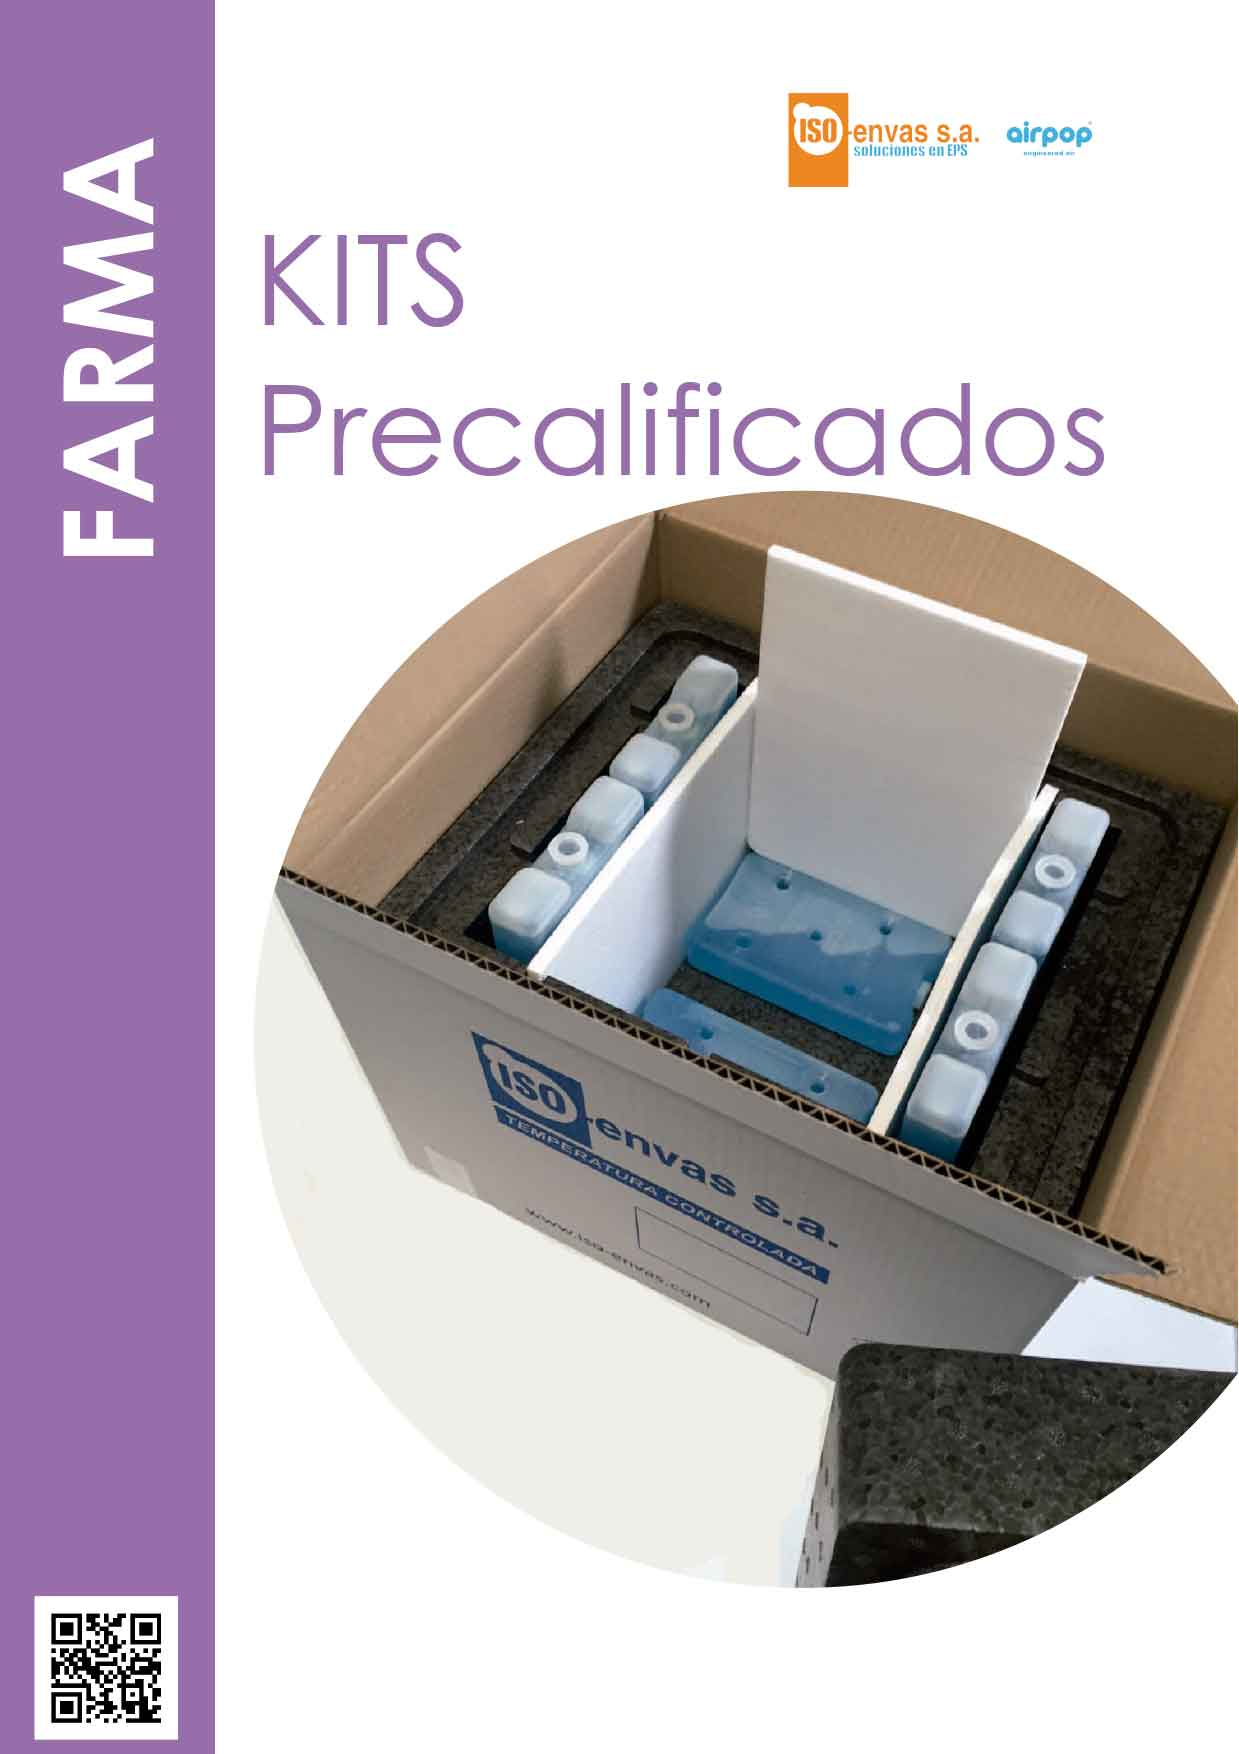 04-1_FARMA_KITS-PRECALIFICADOS-1